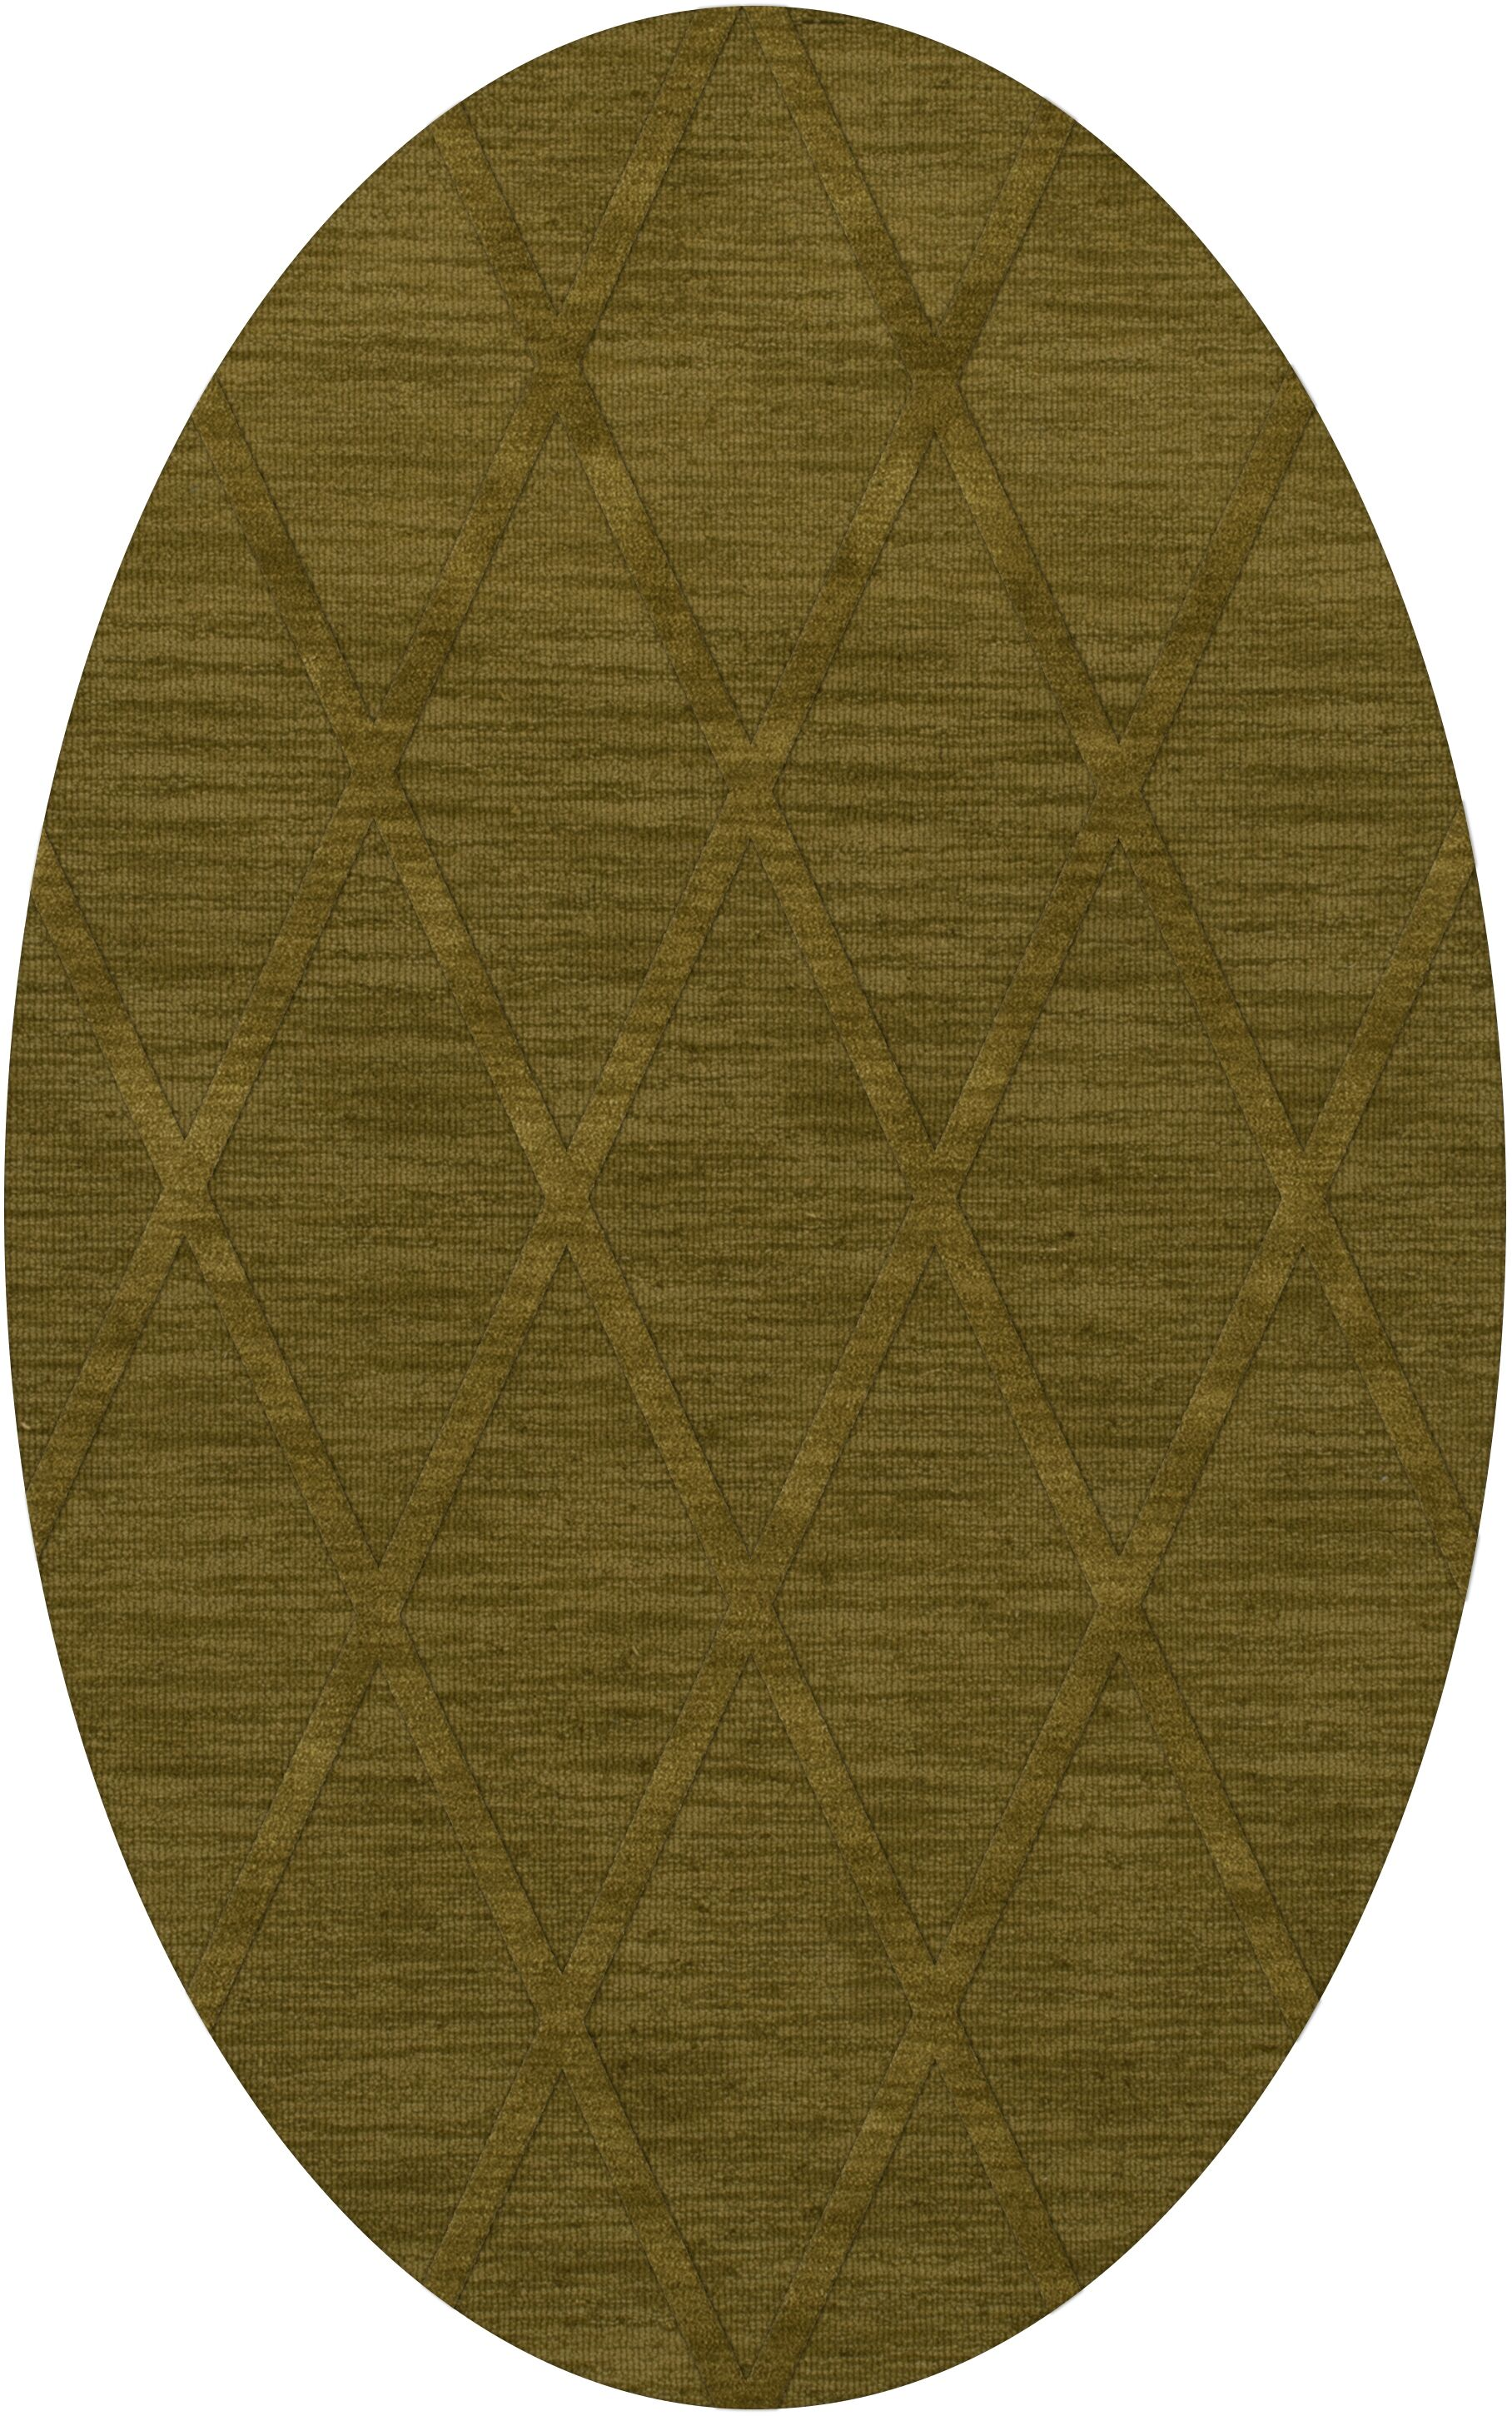 Dover Tufted Wool Avocado Area Rug Rug Size: Oval 10' x 14'